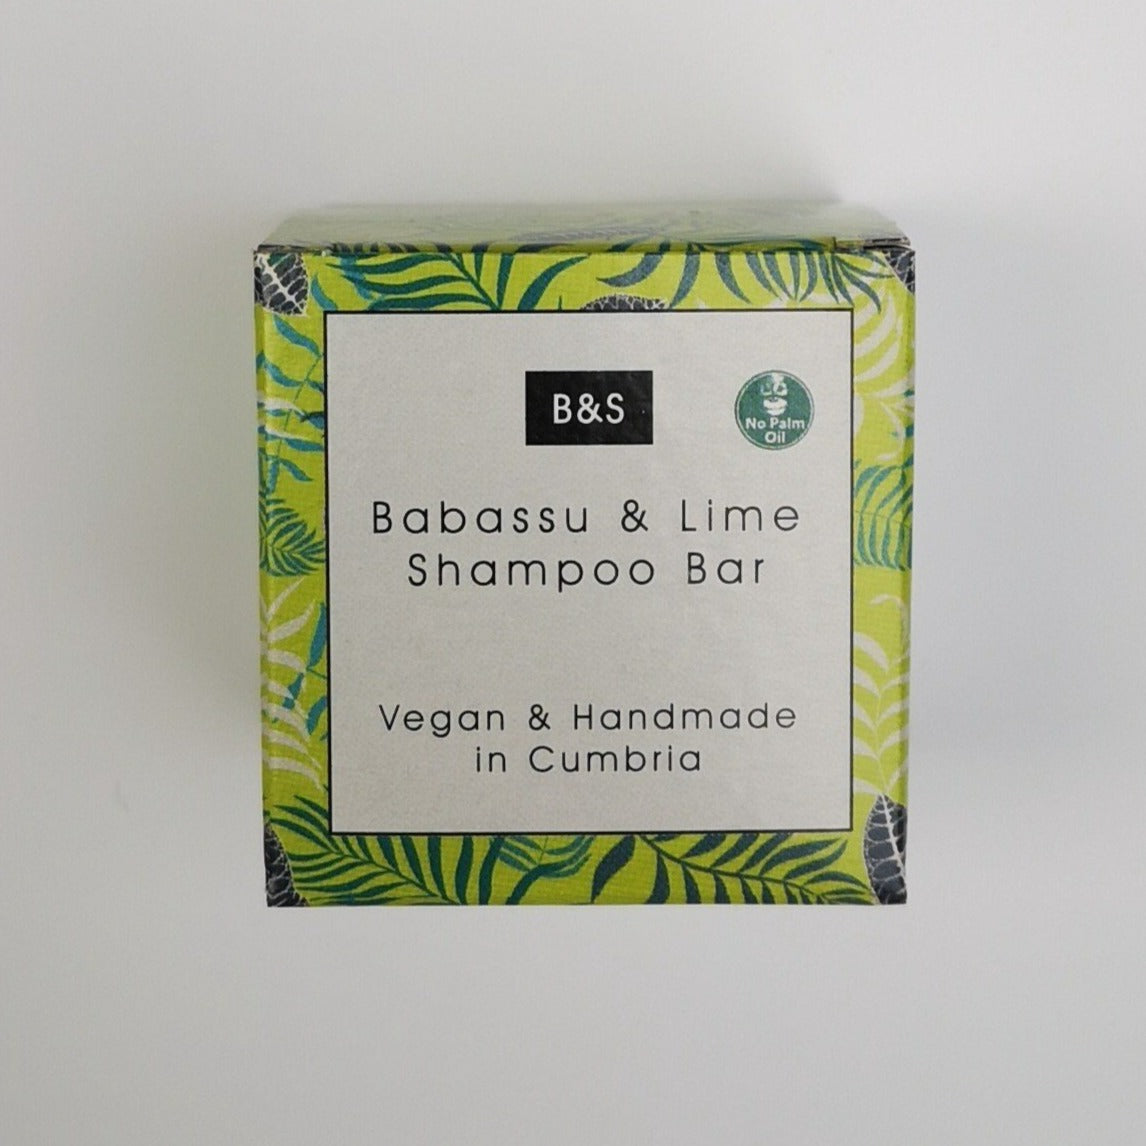 Babassu & Lime Shampoo Bar (130g) - Beautykind